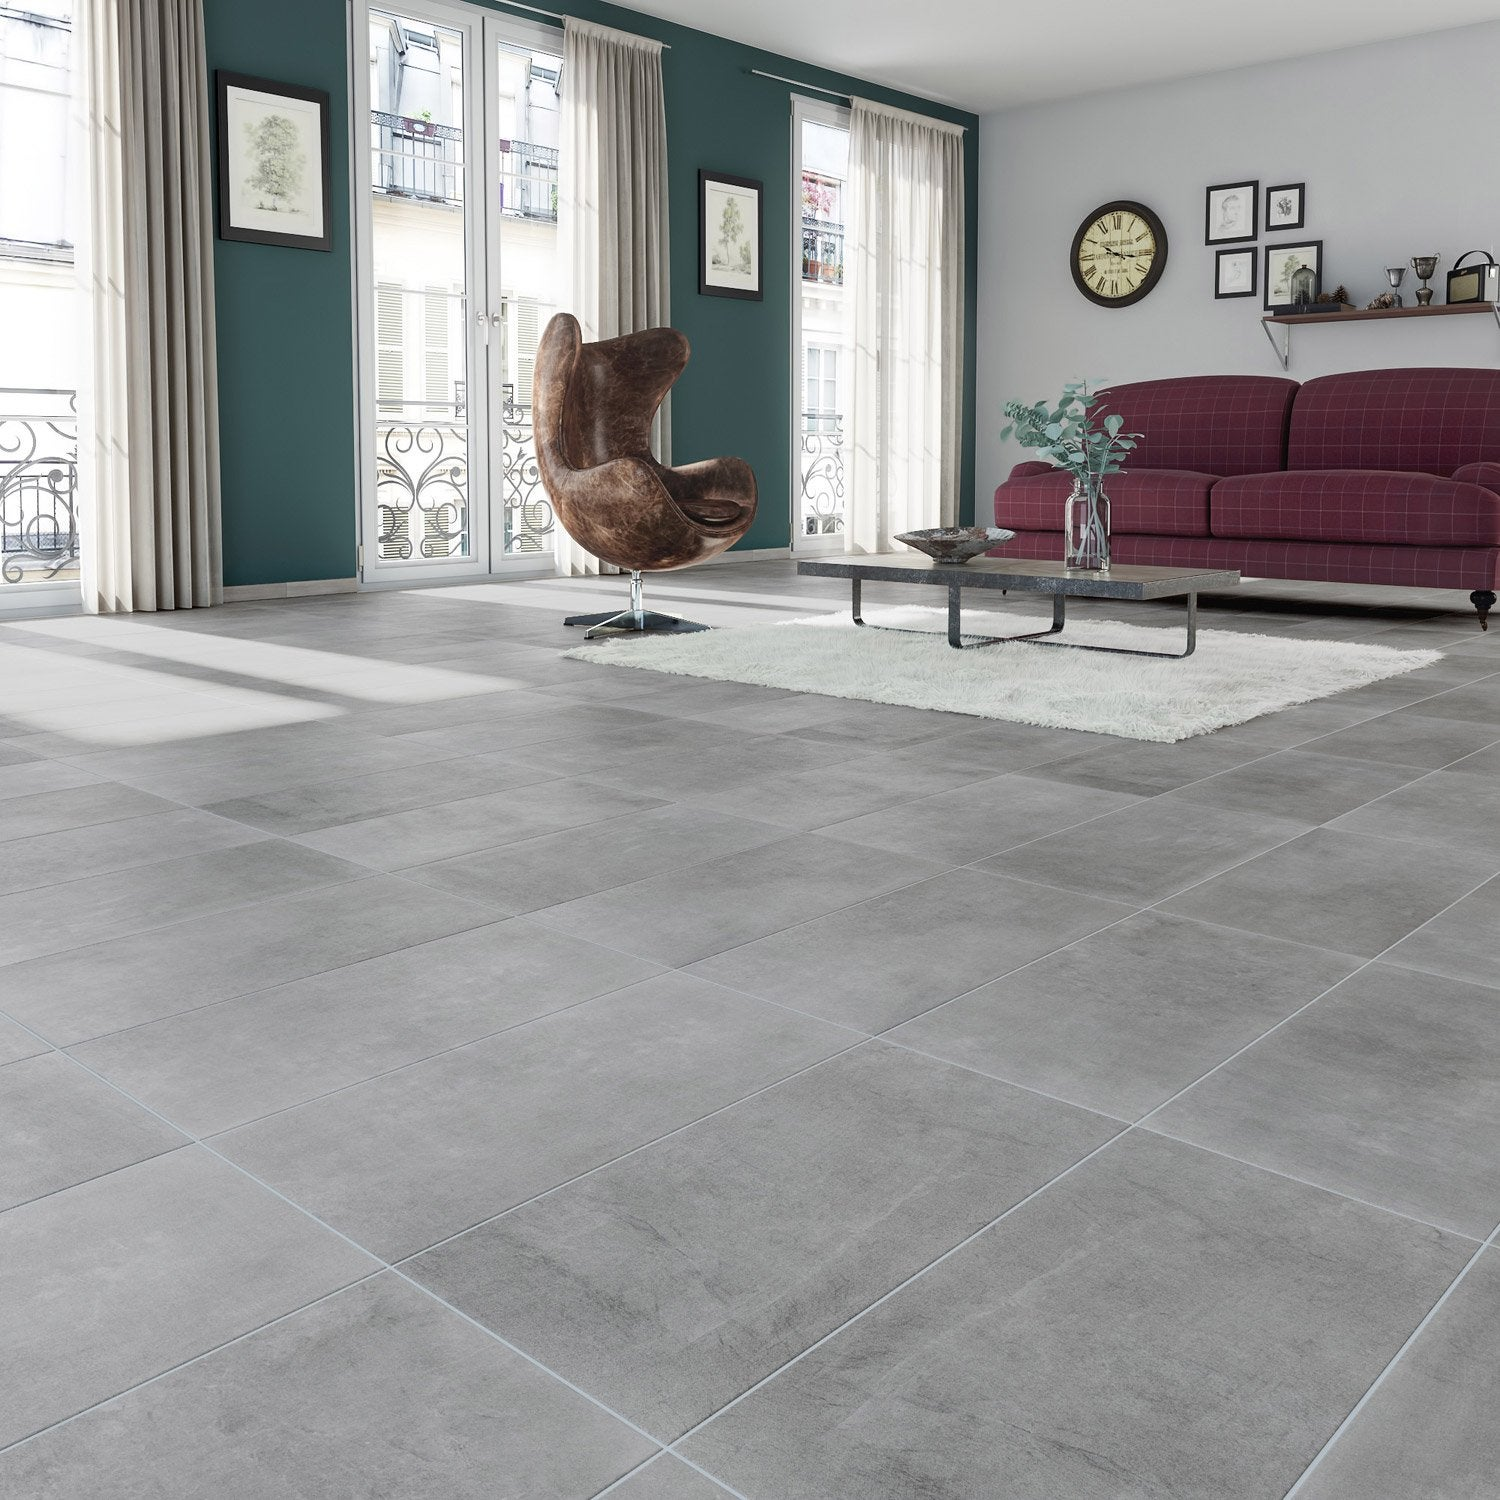 Carrelage sol et mur gris effet b ton new cottage x l for Carrelage 80x80 leroy merlin